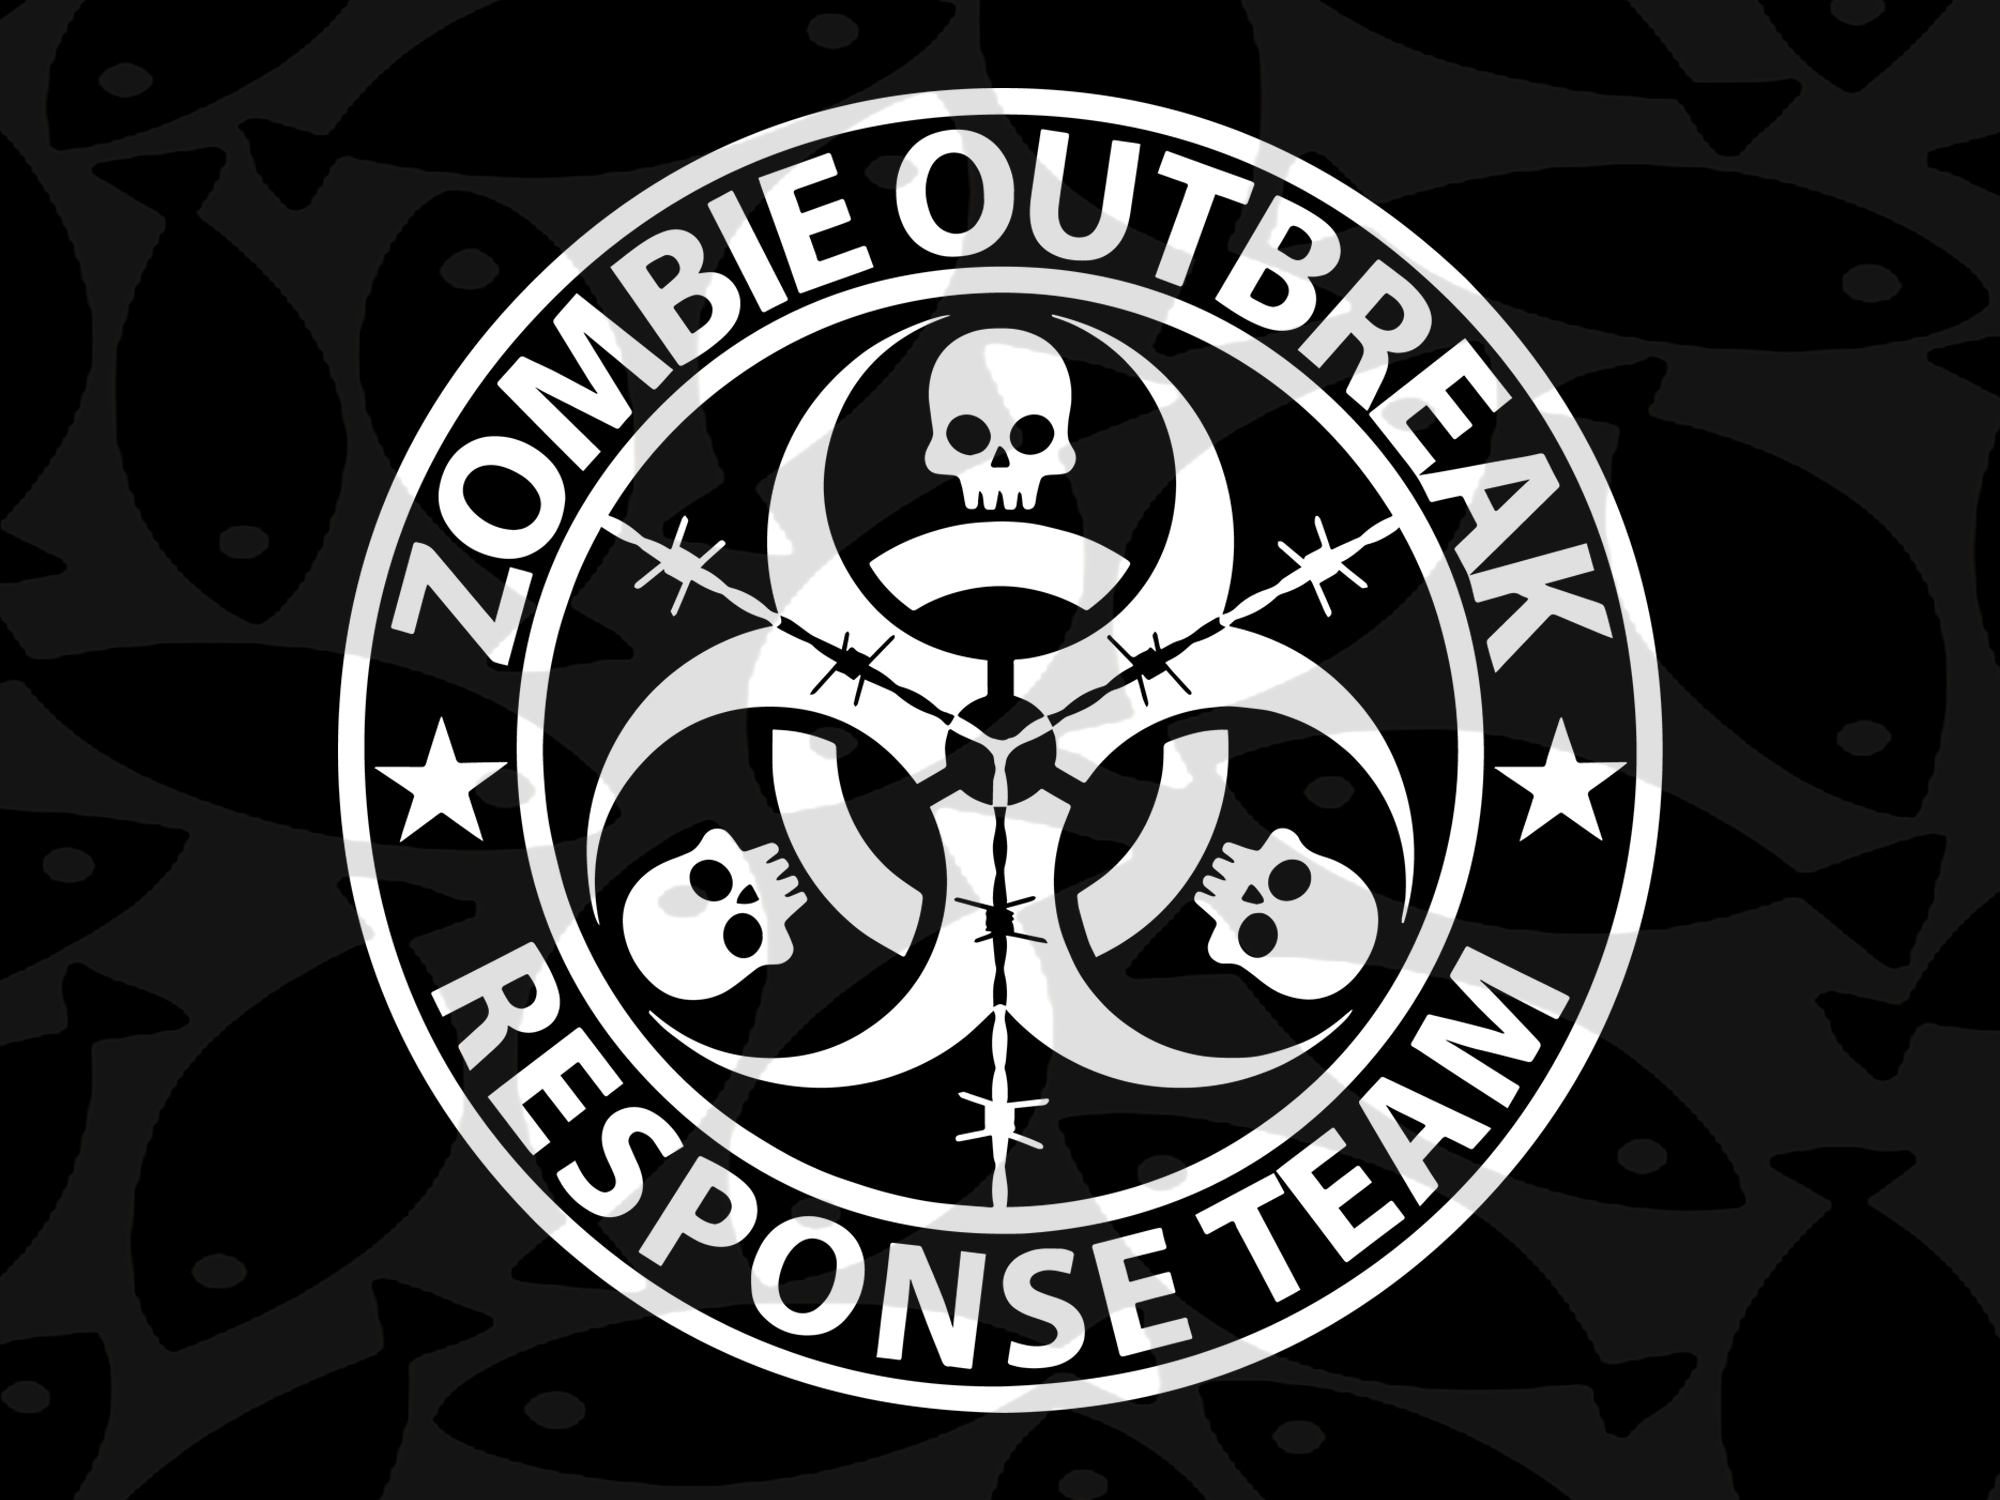 Zombie outbreak response team,  zombie outbreak, zombie, zombie outbreak team, zombie party, zombie response, zombie outbreak logo,trending svg, Files For Silhouette, Files For Cricut, SVG, DXF, EPS, PNG, Instant Download